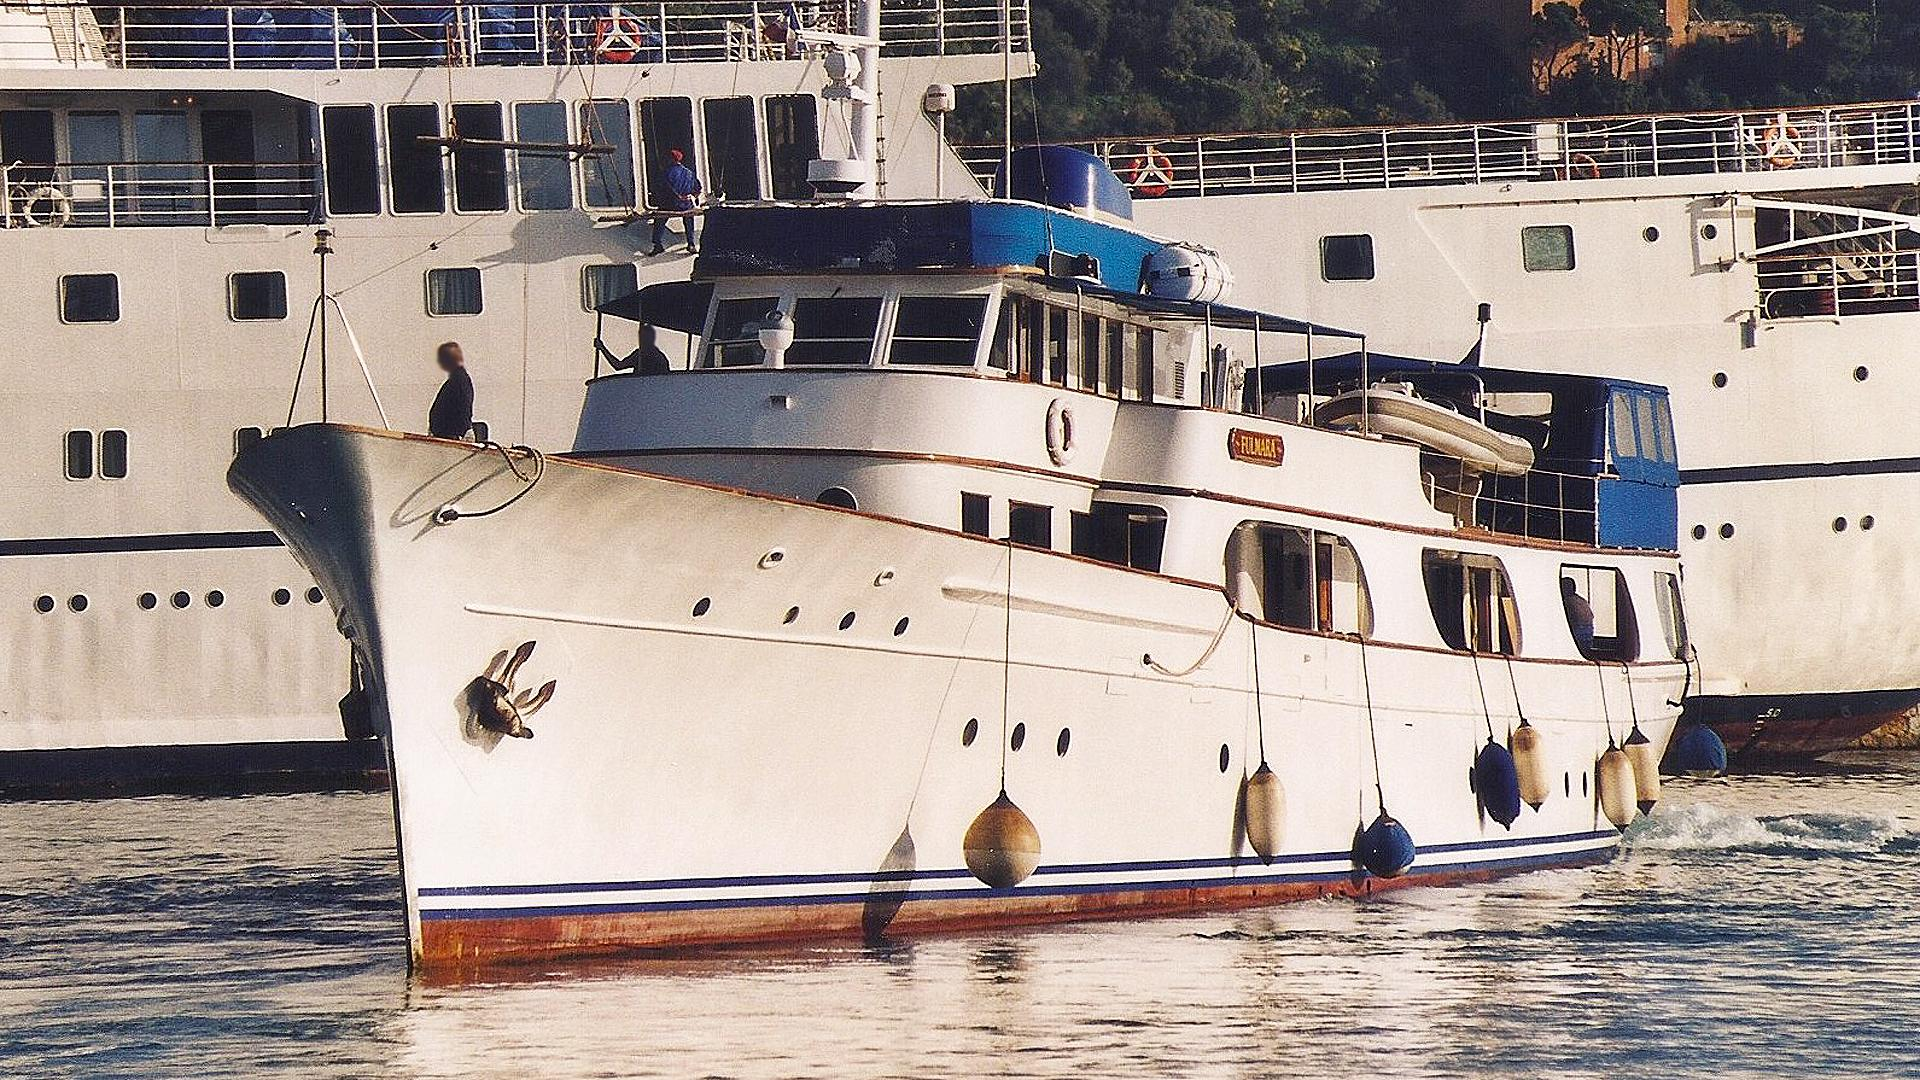 alicia-motor-yacht-defoe-1930-51m-bow-before-refit